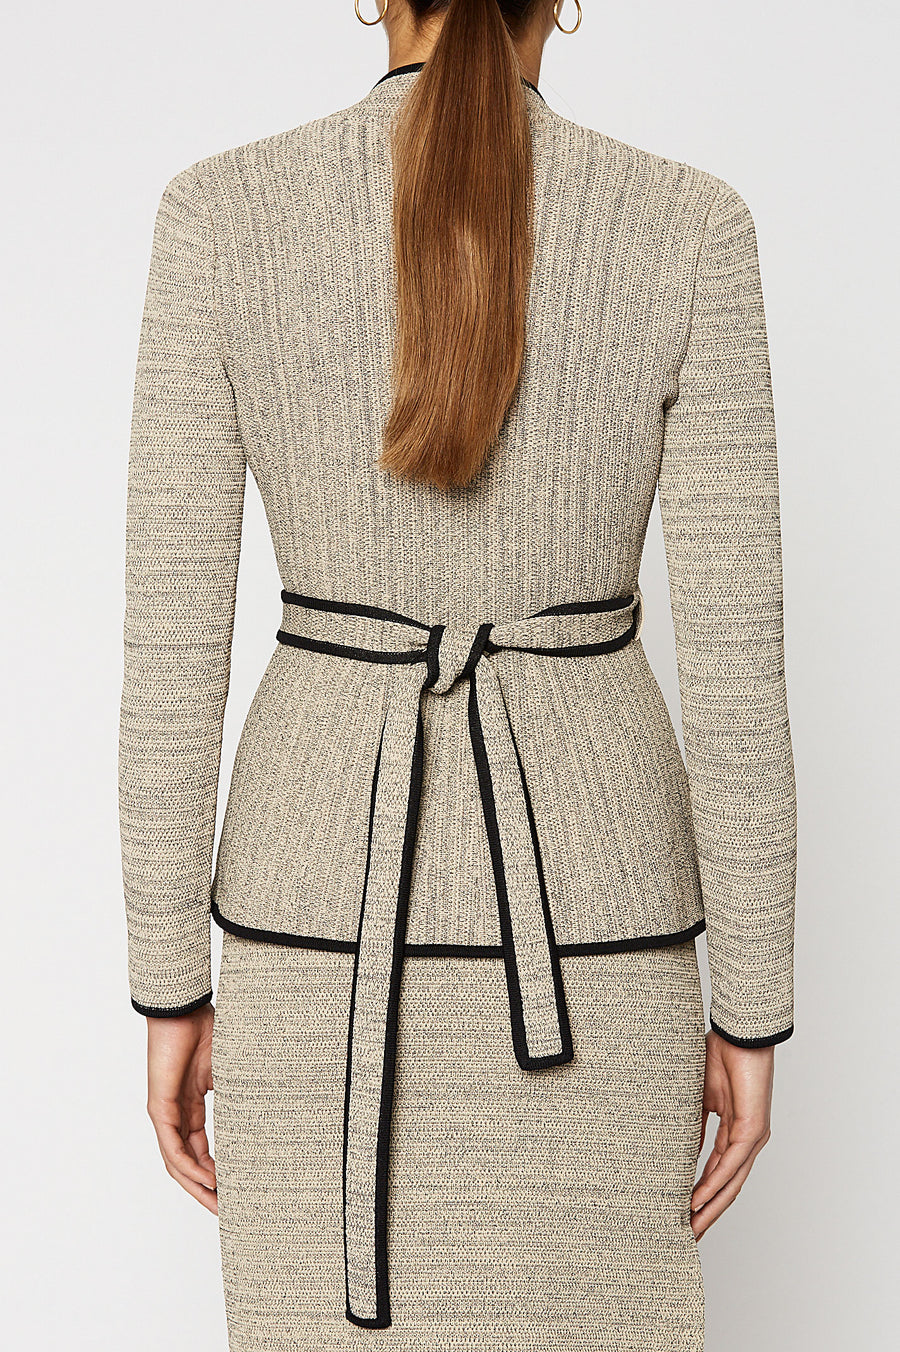 CREPE KNIT TWEED WRAP JACKET